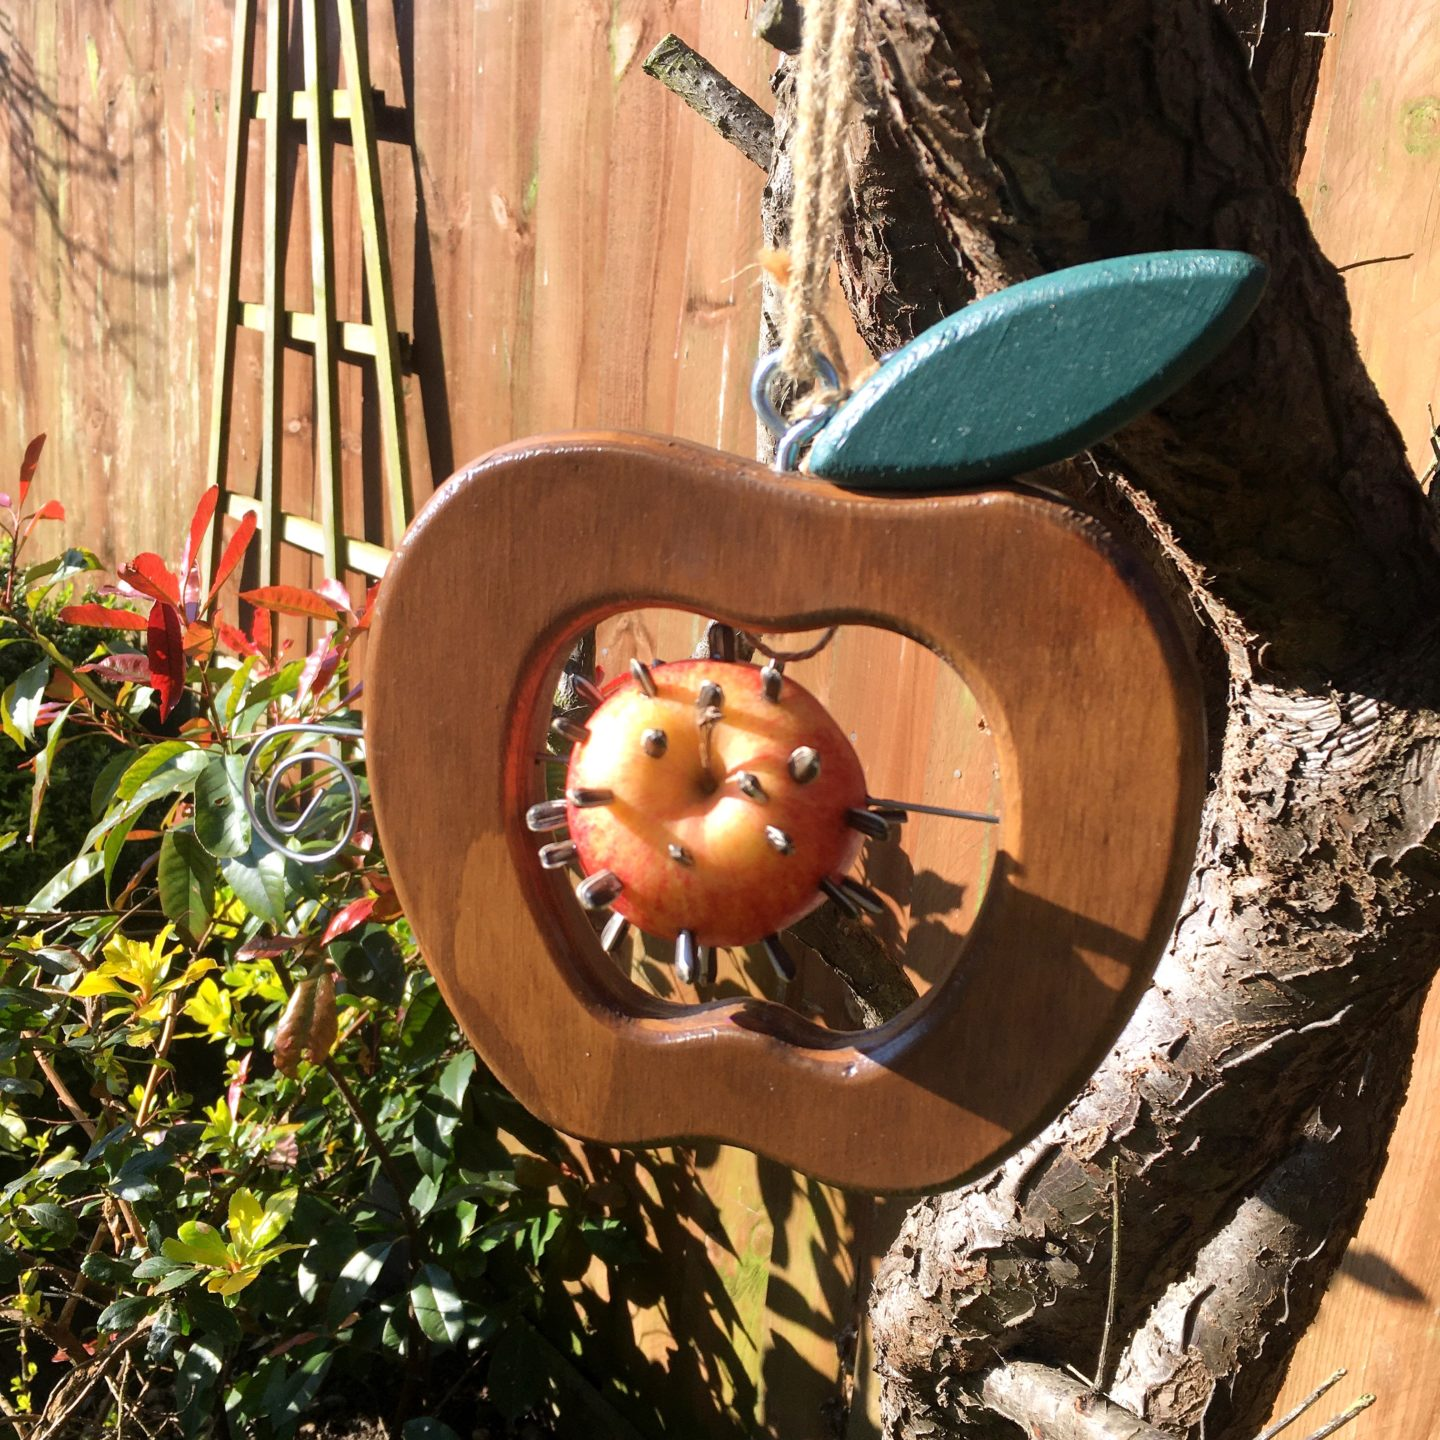 Eco apple bird feeder with sunflower seeds poked in hanging from a tree